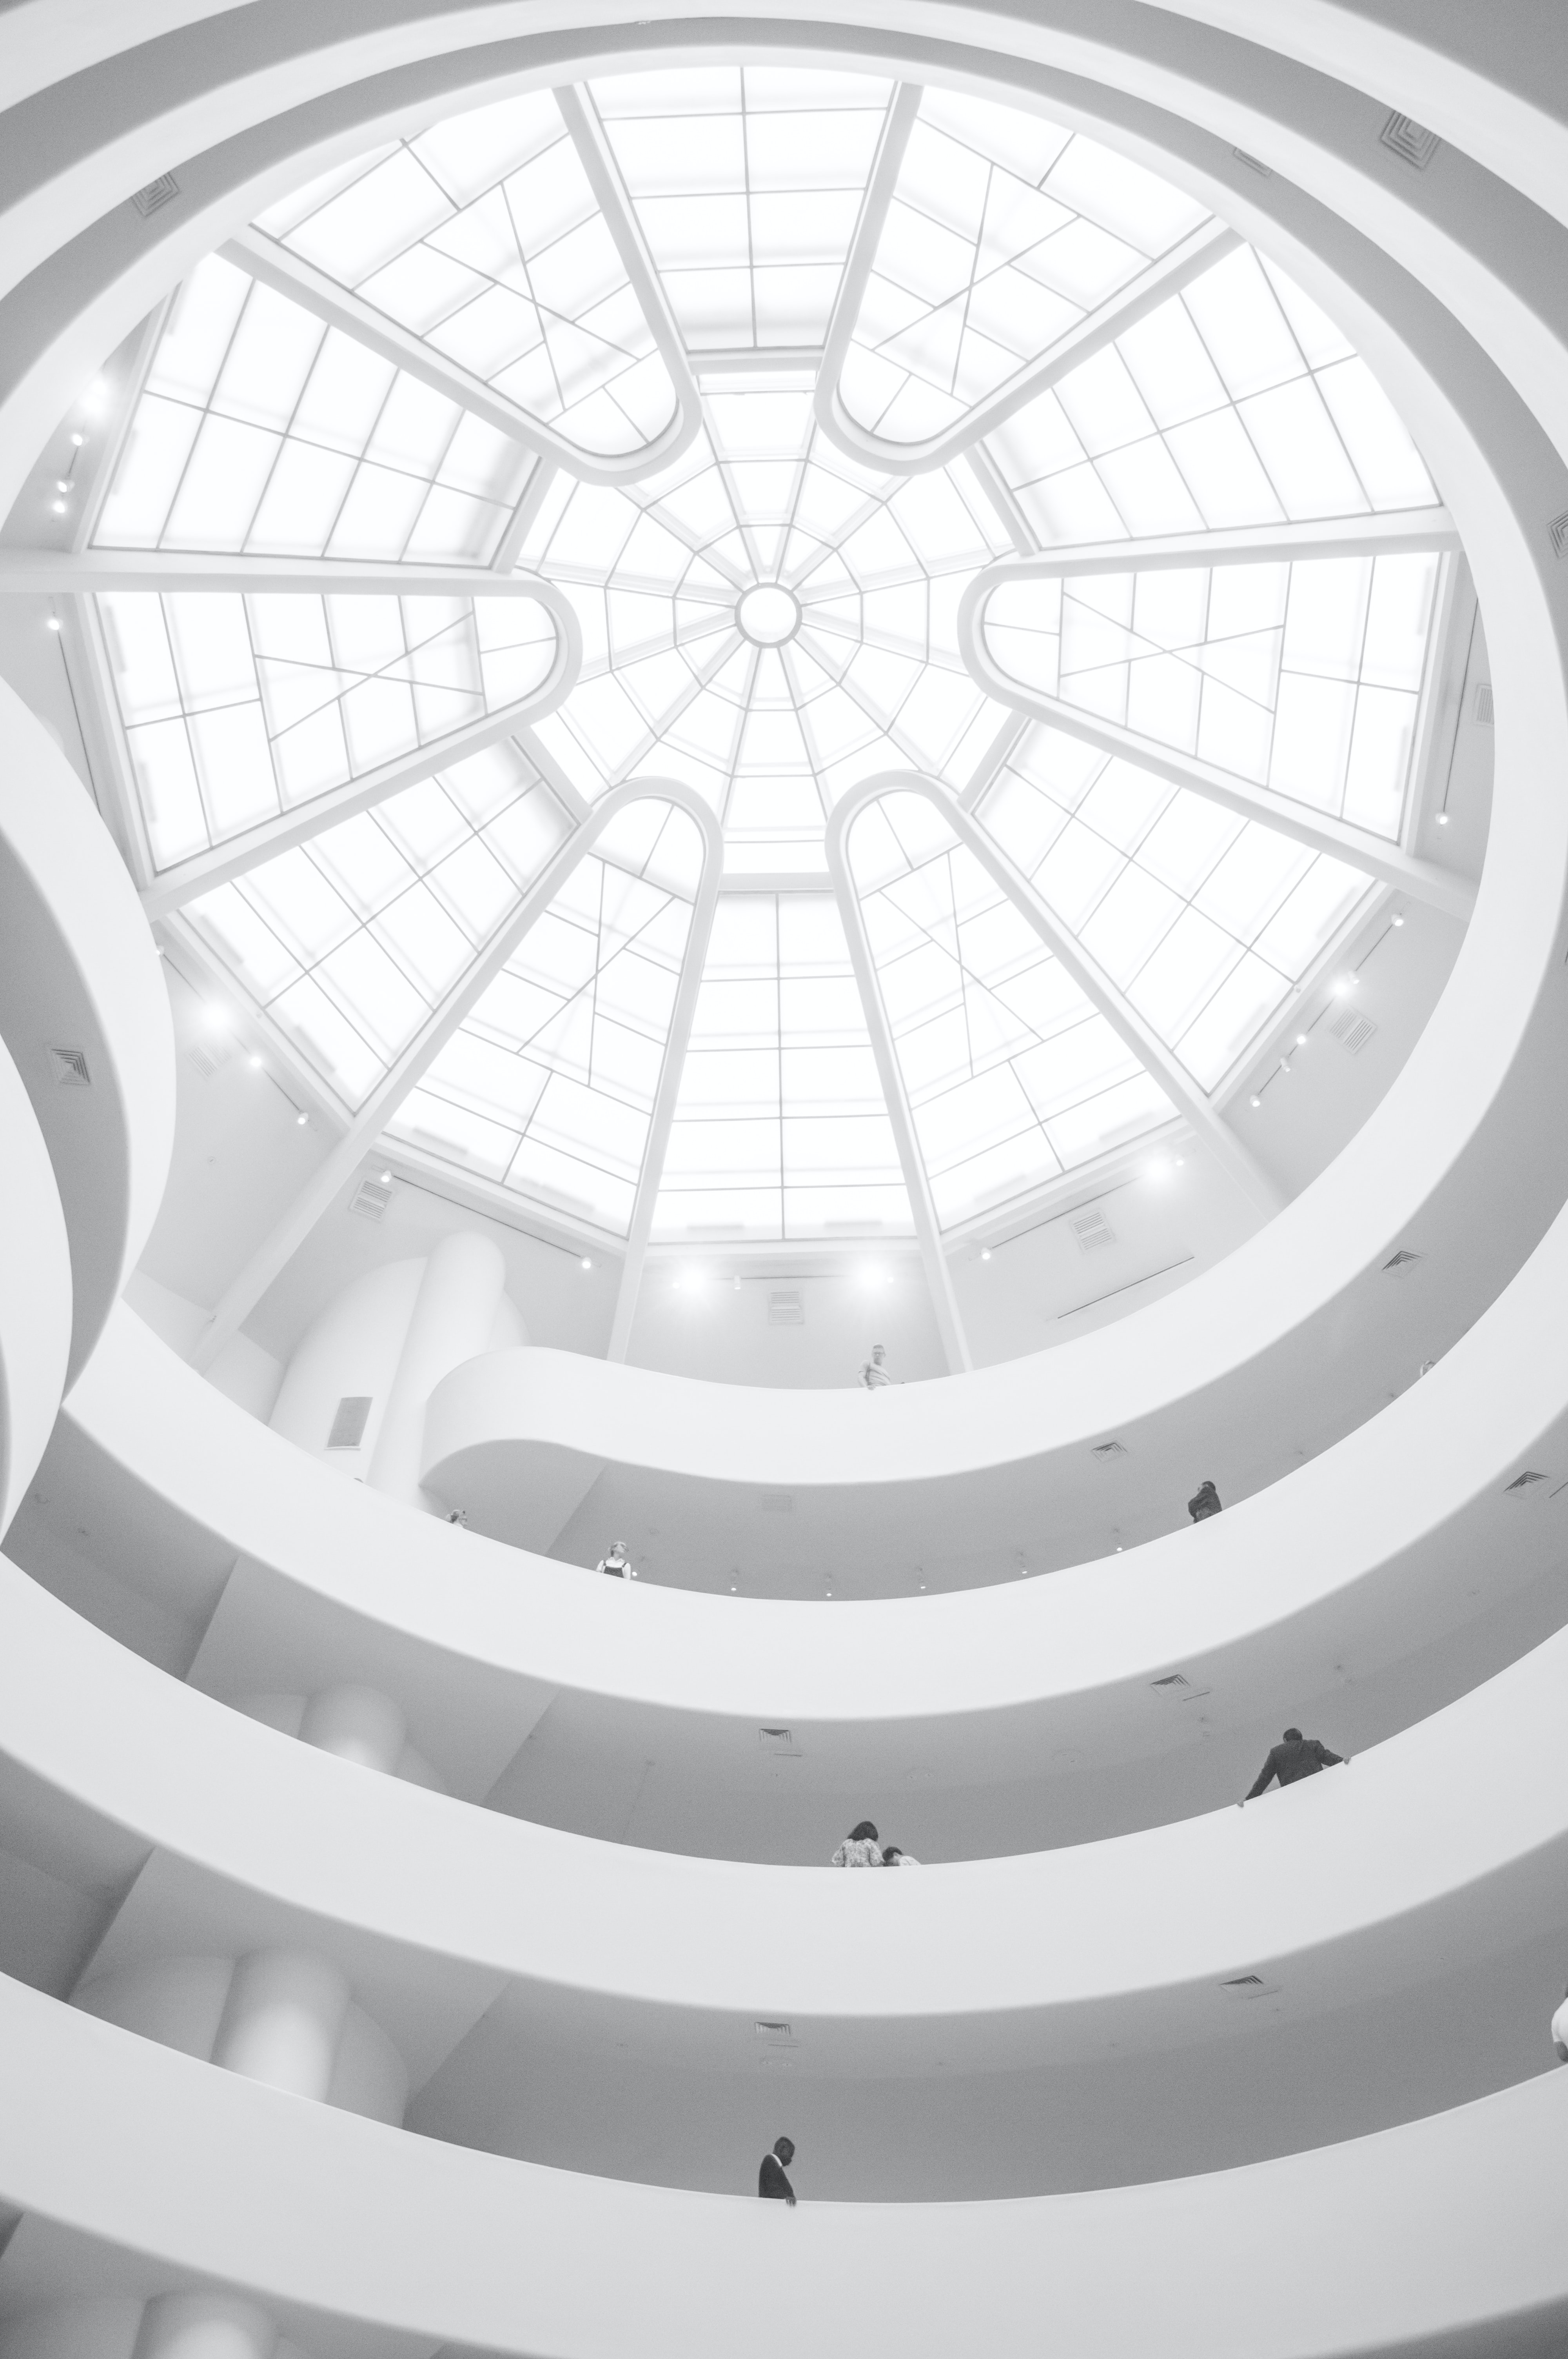 A white dome in the ceiling of a modern building